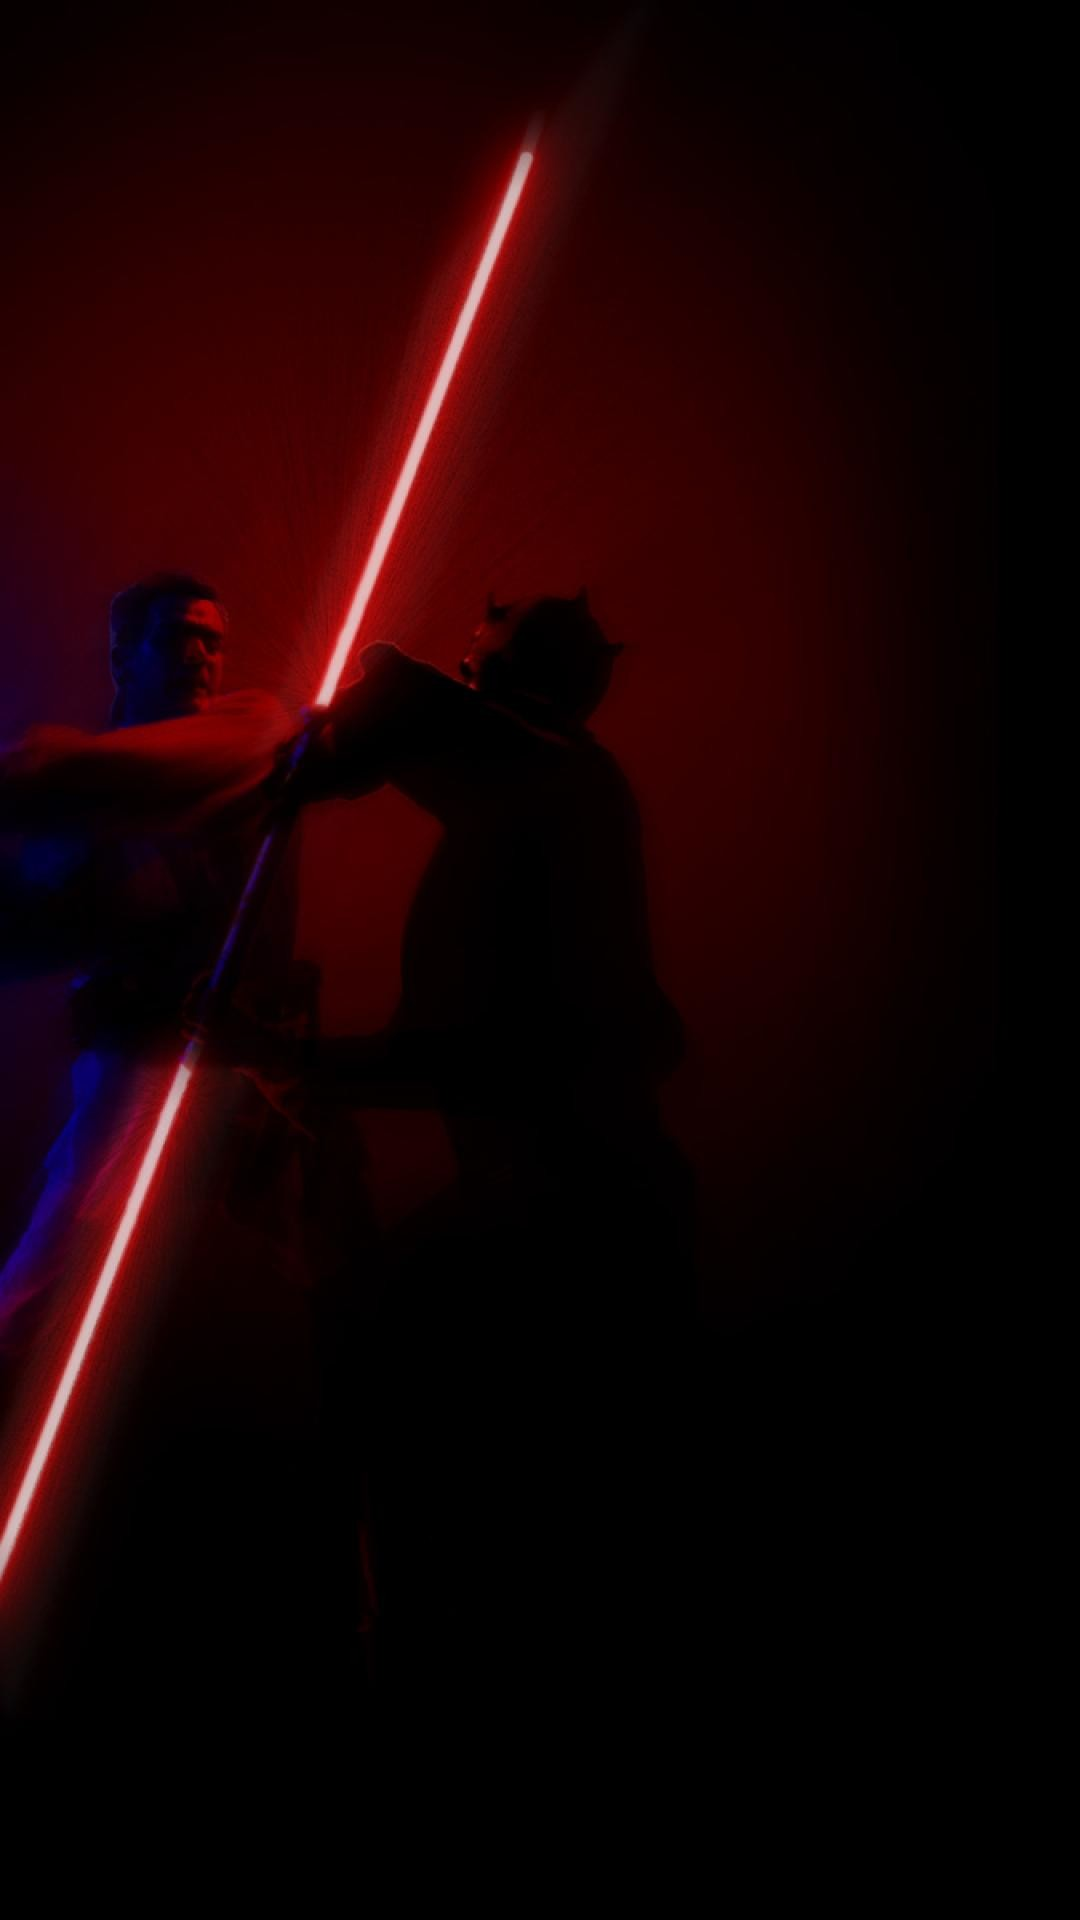 Star Wars Fight Darth Maul Lightsabers Obi Wan Kenobi Darth Maul Wallpaper Iphone 1080x1920 Wallpaper Teahub Io